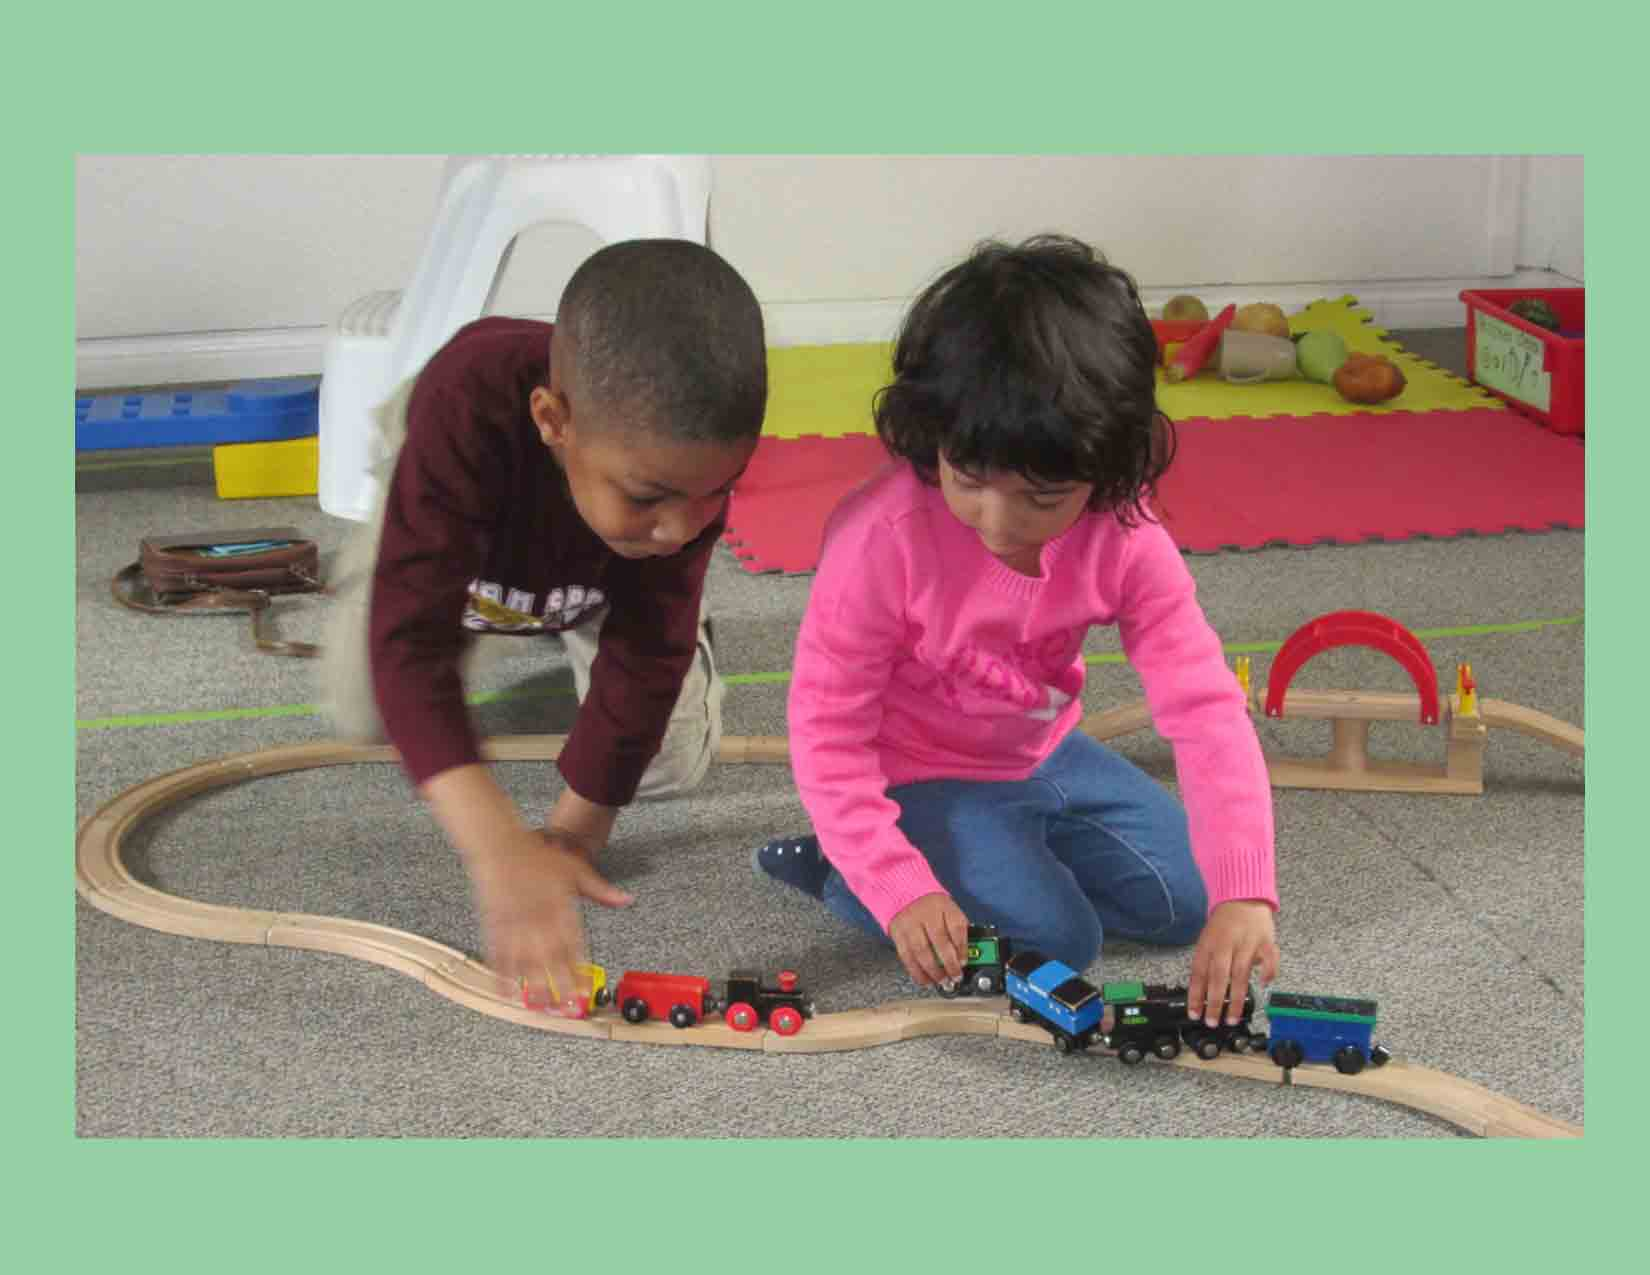 Chestermere-Playing-with-Trains-Preschool